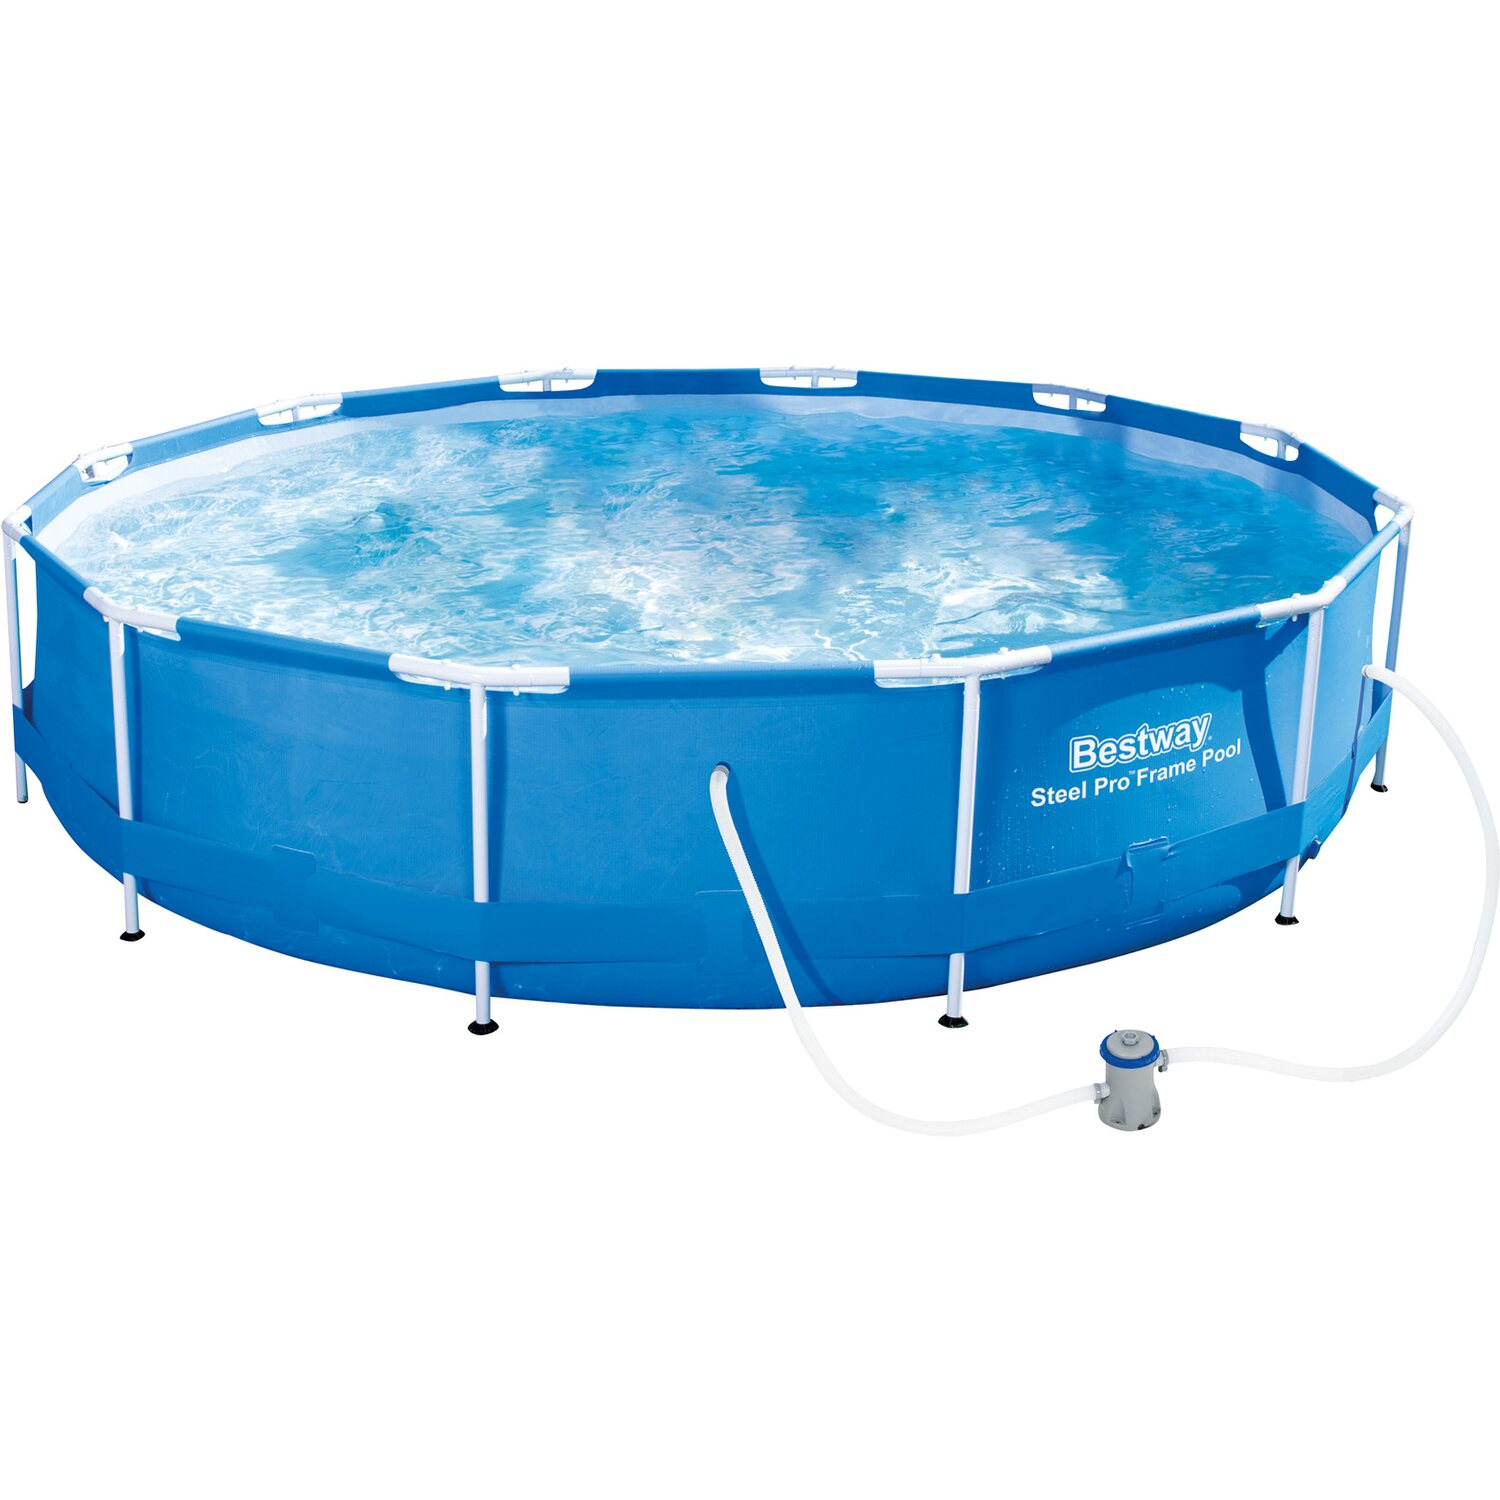 Bestway stahlrahmen swimming pool set 366 cm x 76 cm for Swimming pool set angebot